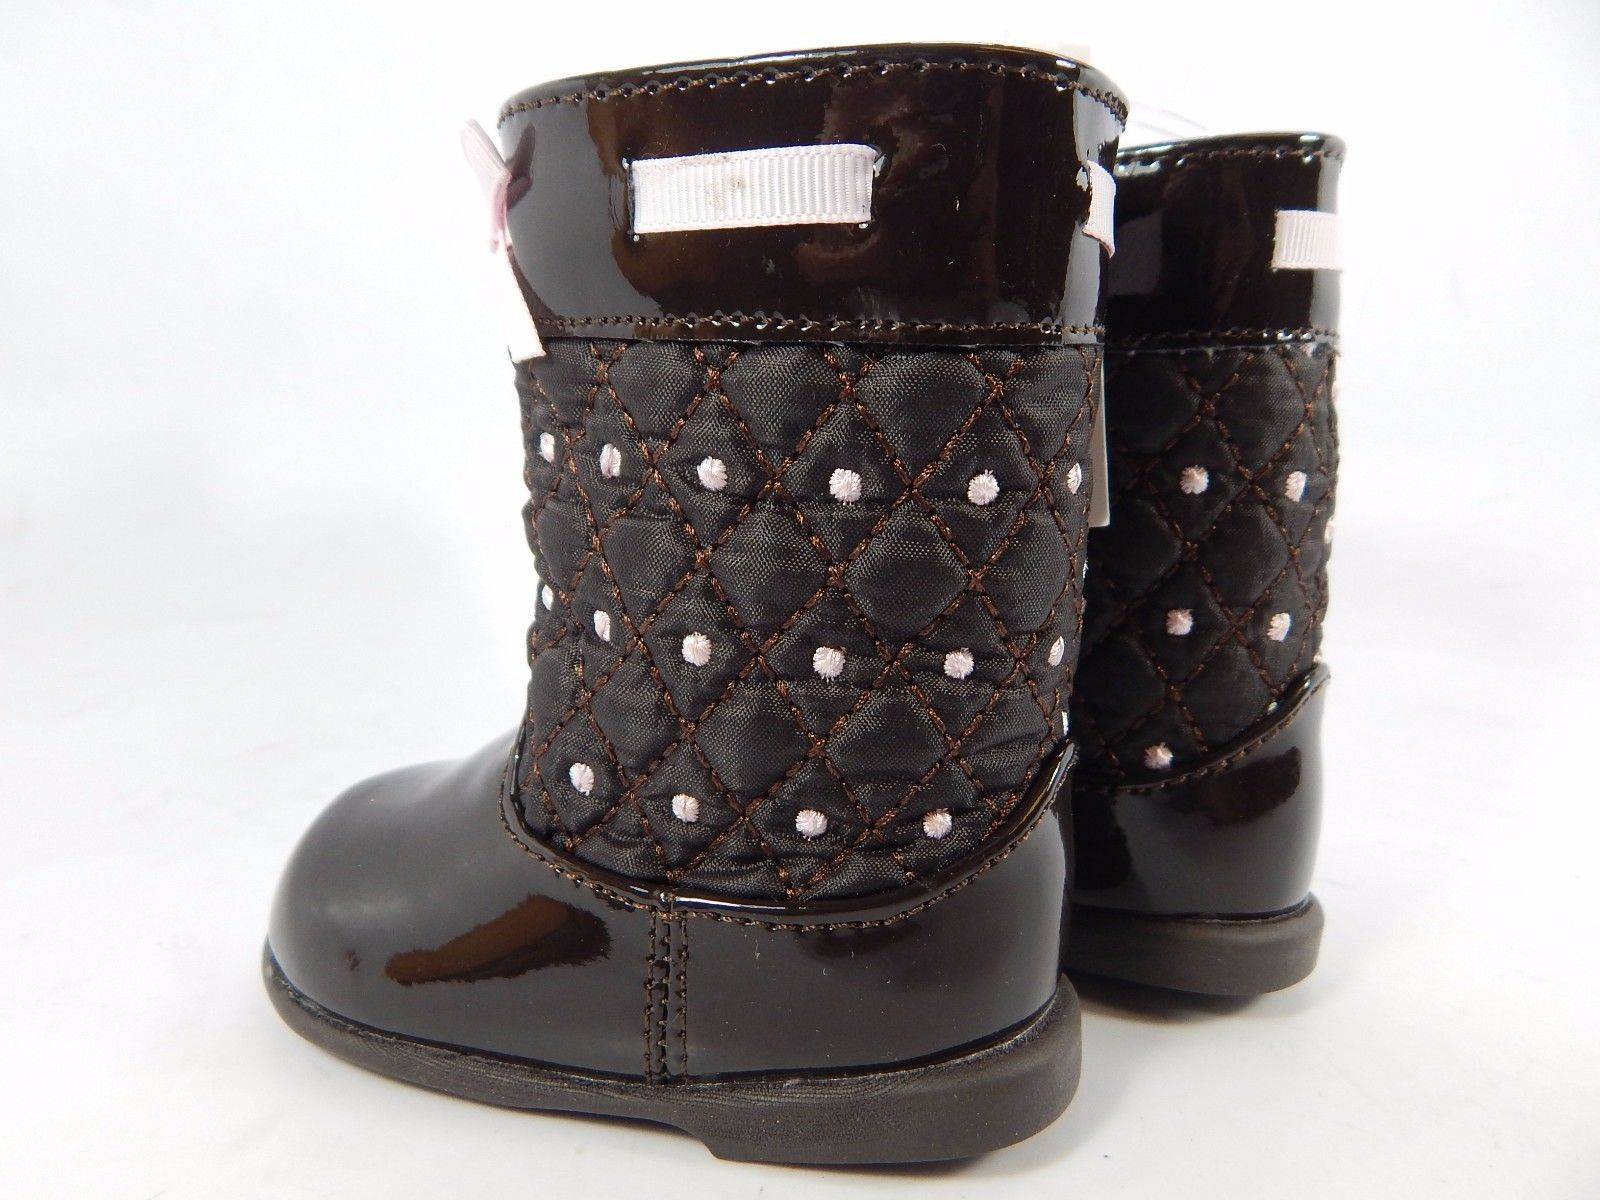 NWT BABY DEER Quilted Infant Toddler Girl Boots Shoes Size 2 0-12 Months